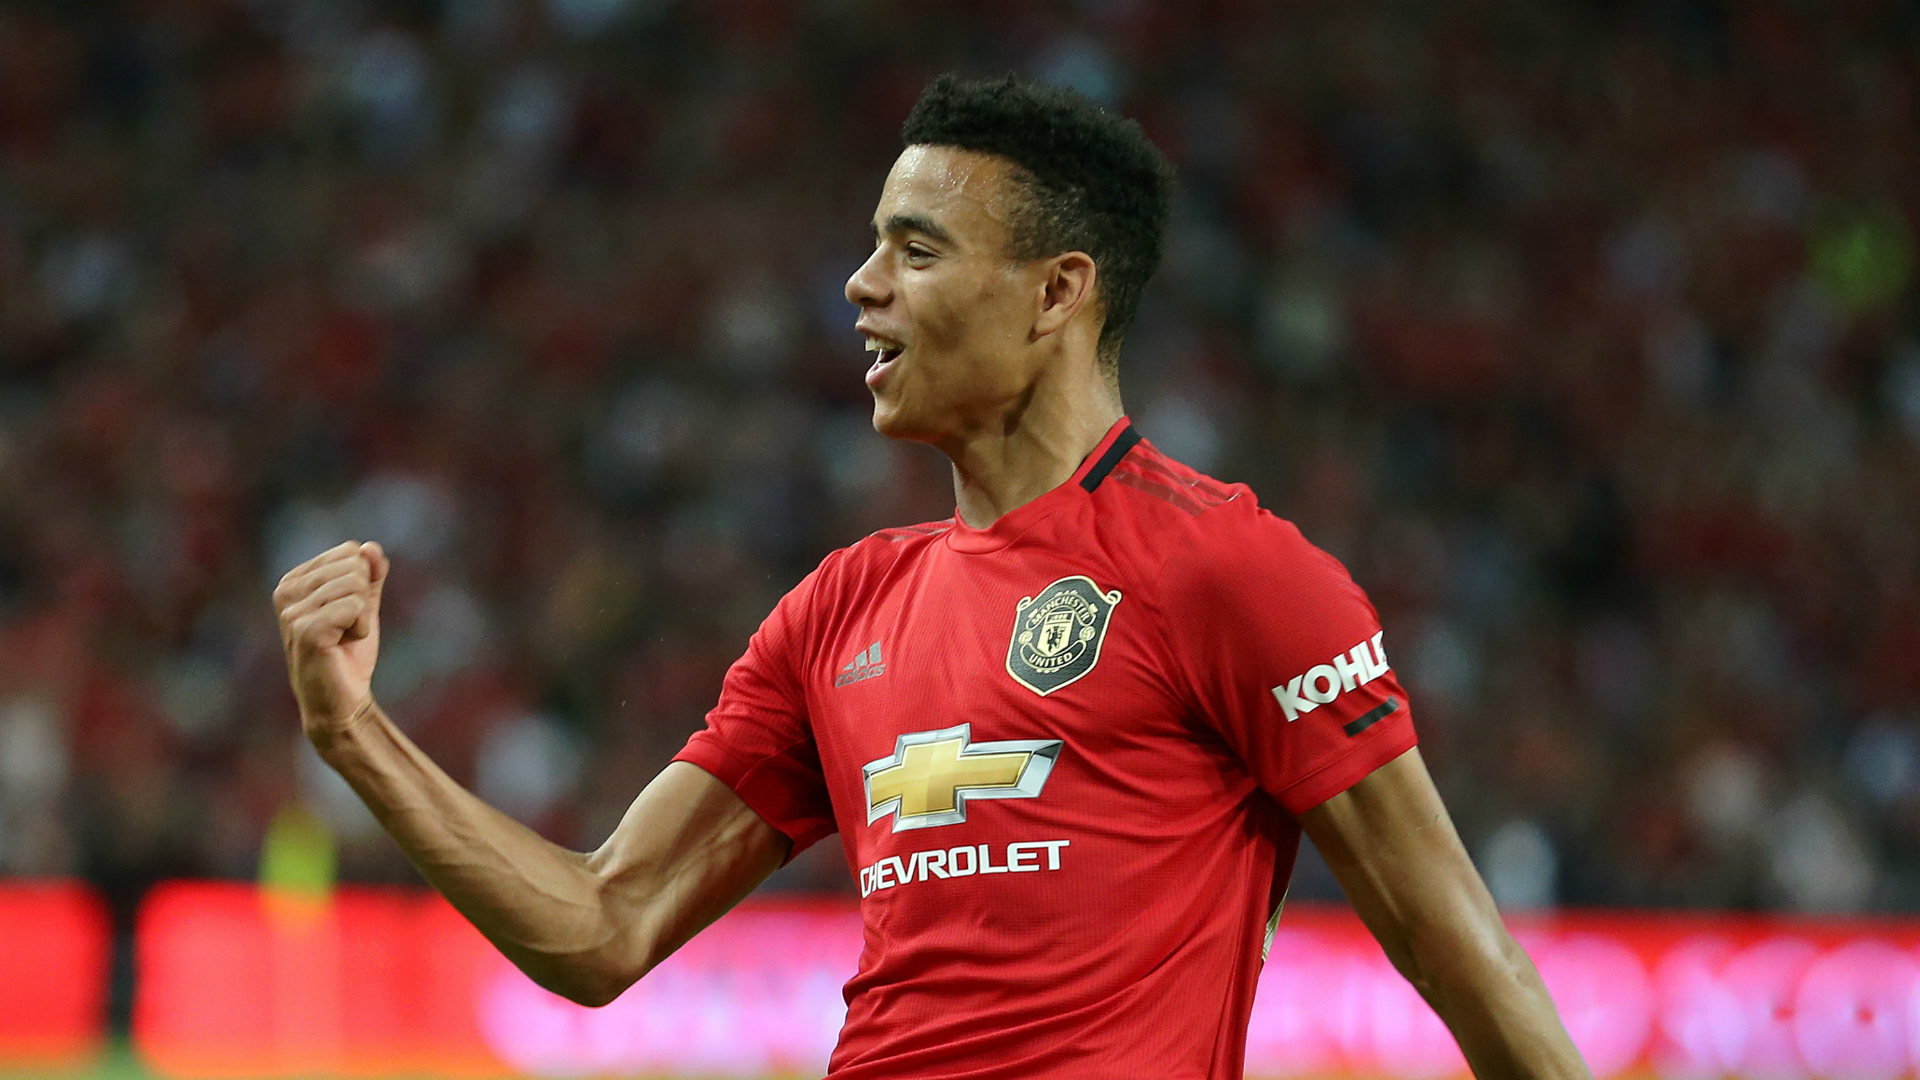 Solskjaer sees shades of Giggs in Greenwood breakthrough at Man United